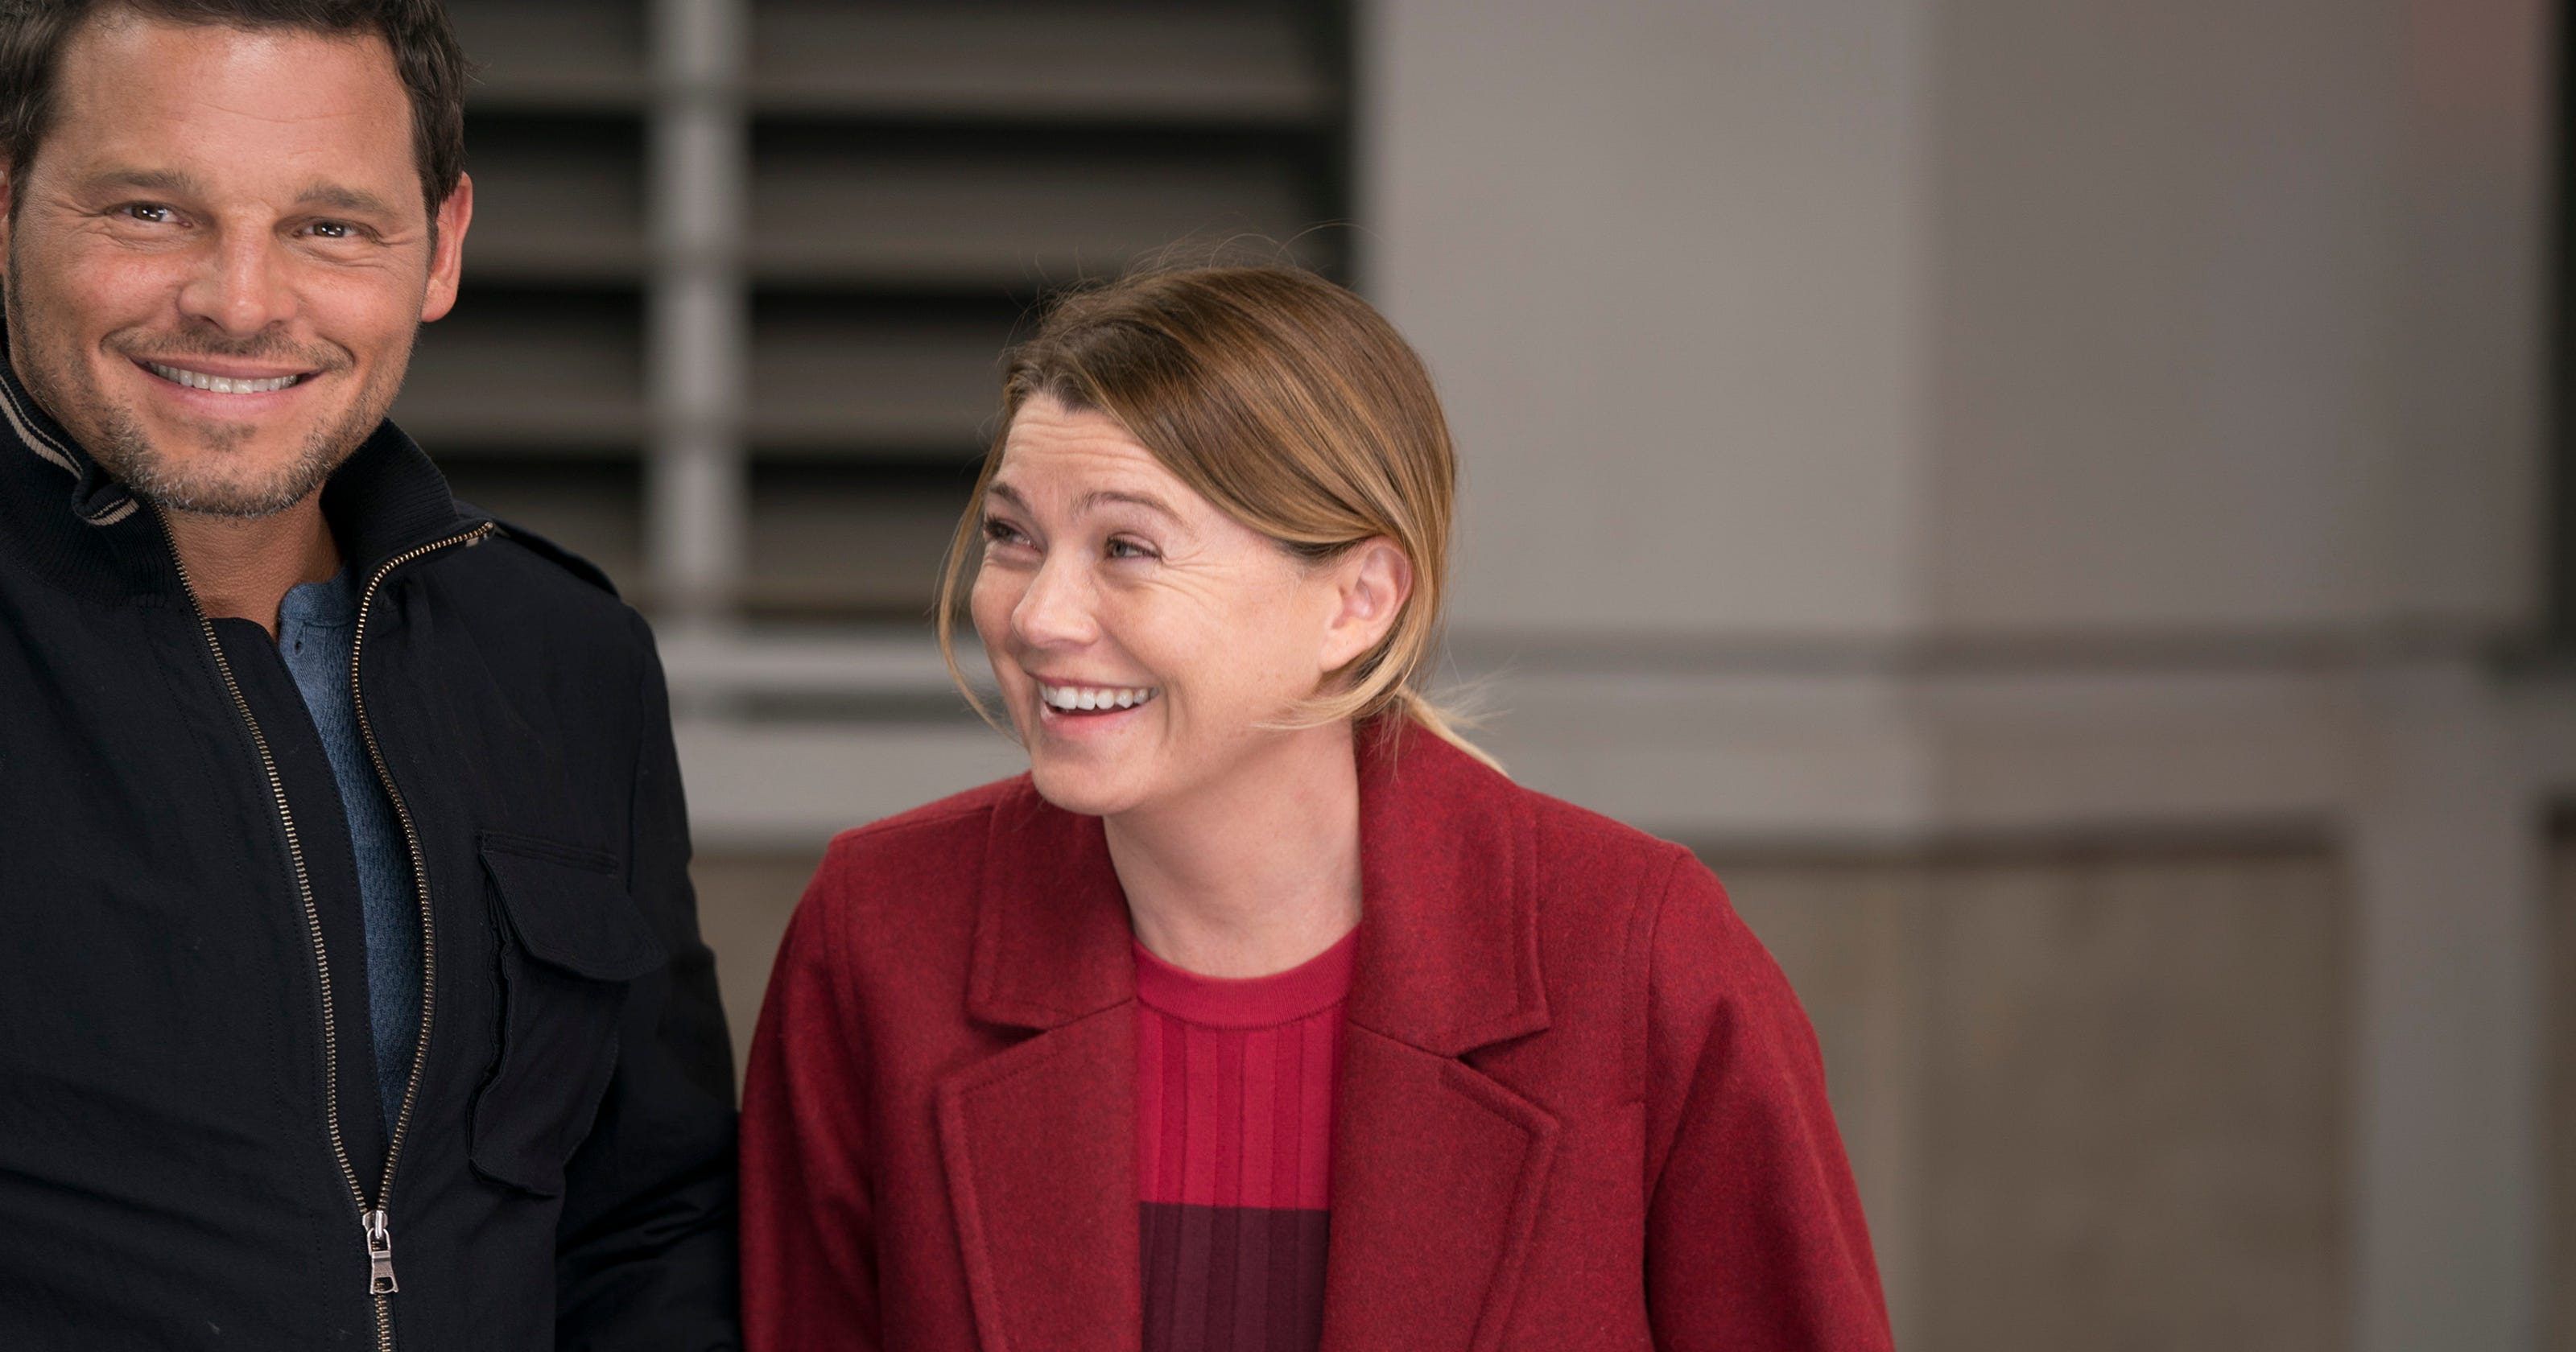 Greys Anatomy 300th Episode Is A Love Letter To The Original Cast